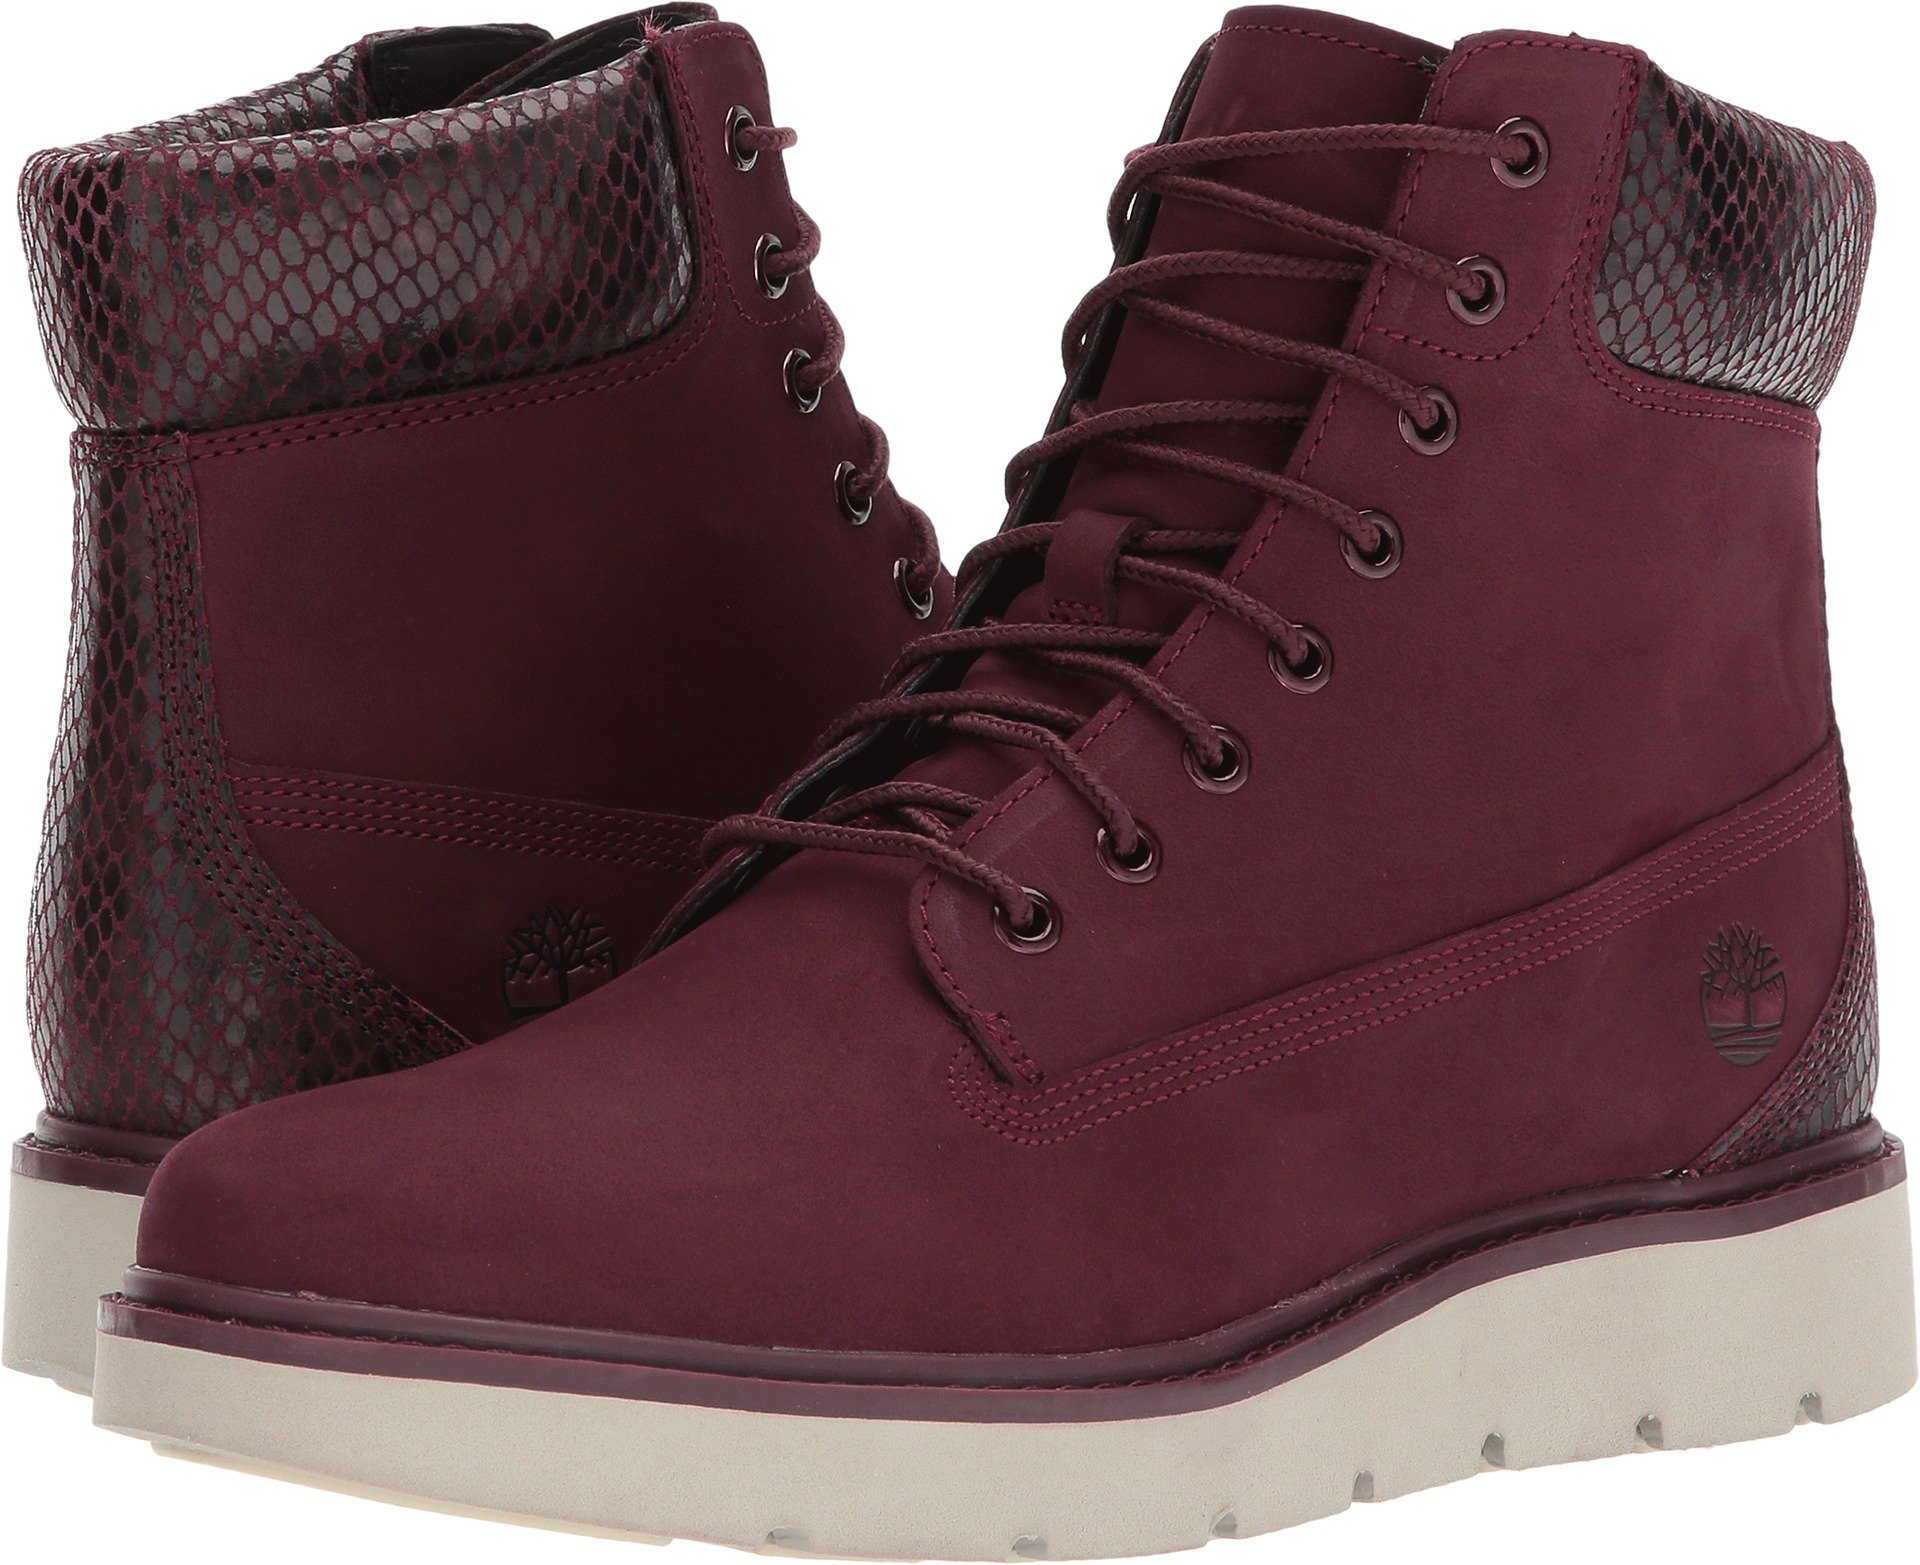 Timberland Womens Kensington 6-Inch Lace-Up Boot Dark Red Nubuck Size 10 by Timberland